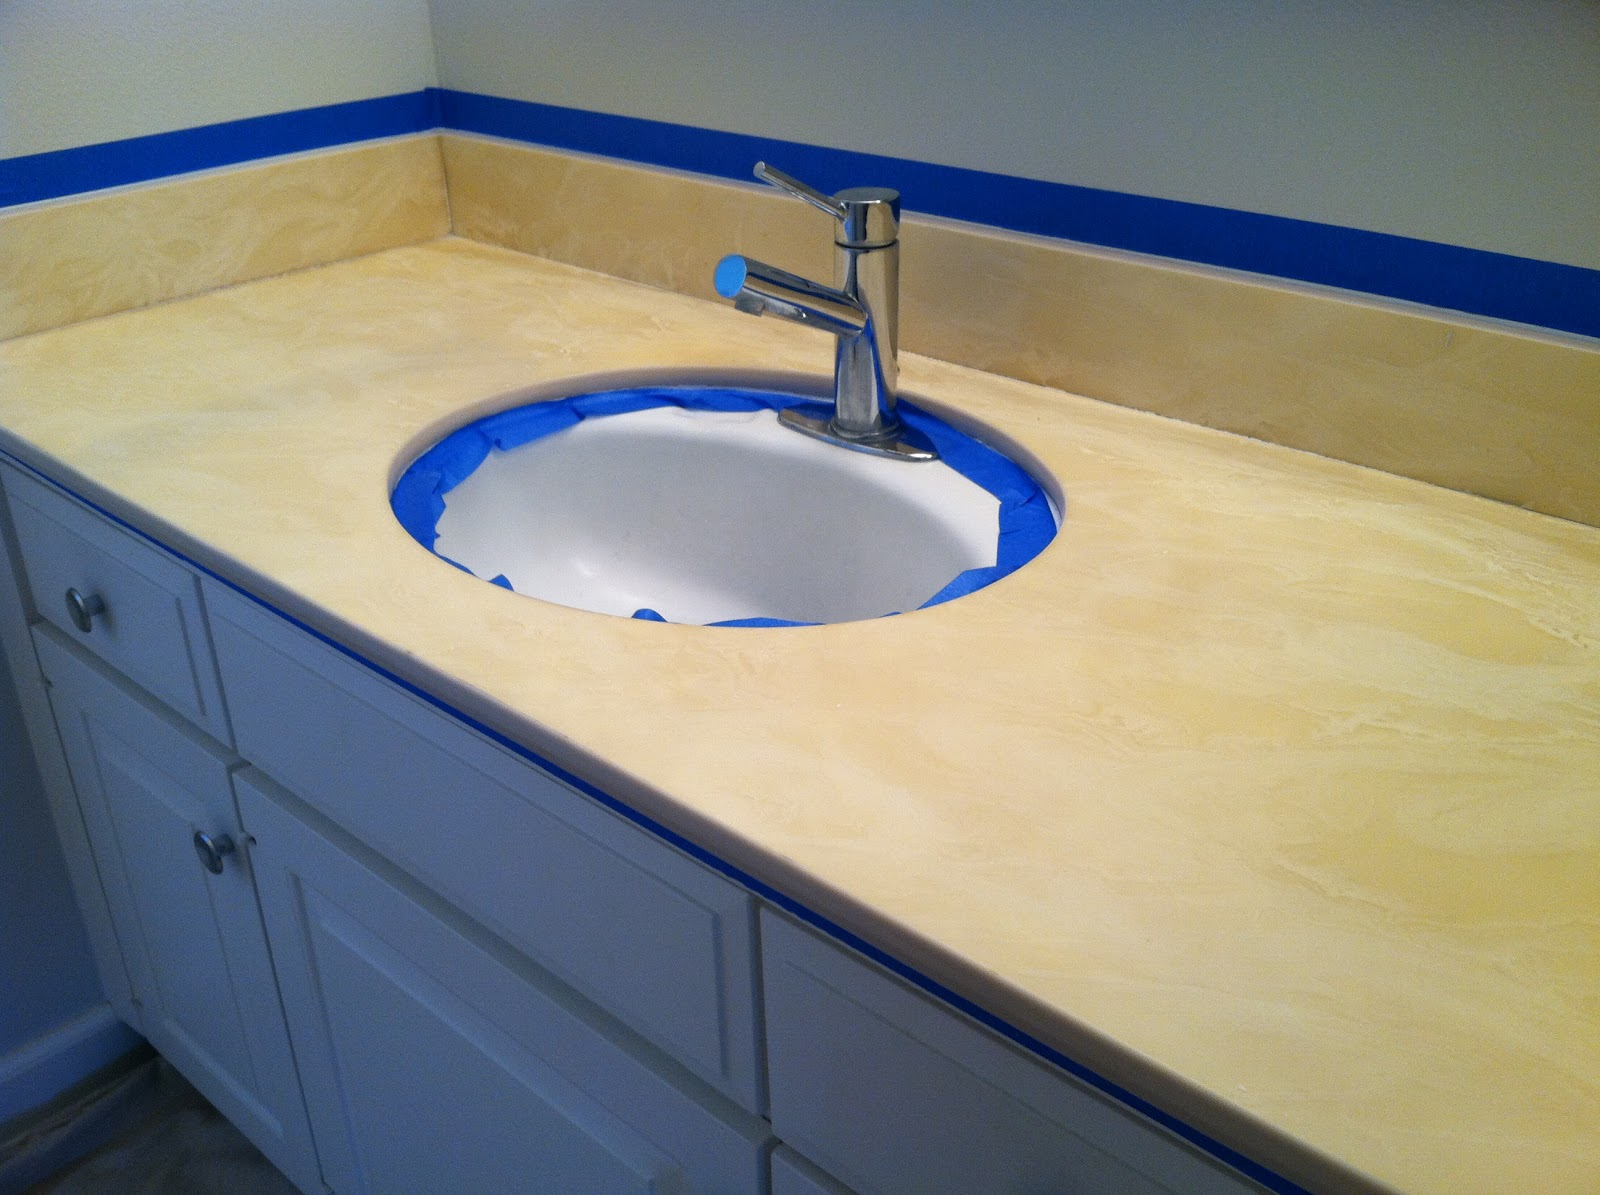 Wondrous Project Reveal Painted Bathroom Countertop Holtwood Hipster Home Interior And Landscaping Ymoonbapapsignezvosmurscom